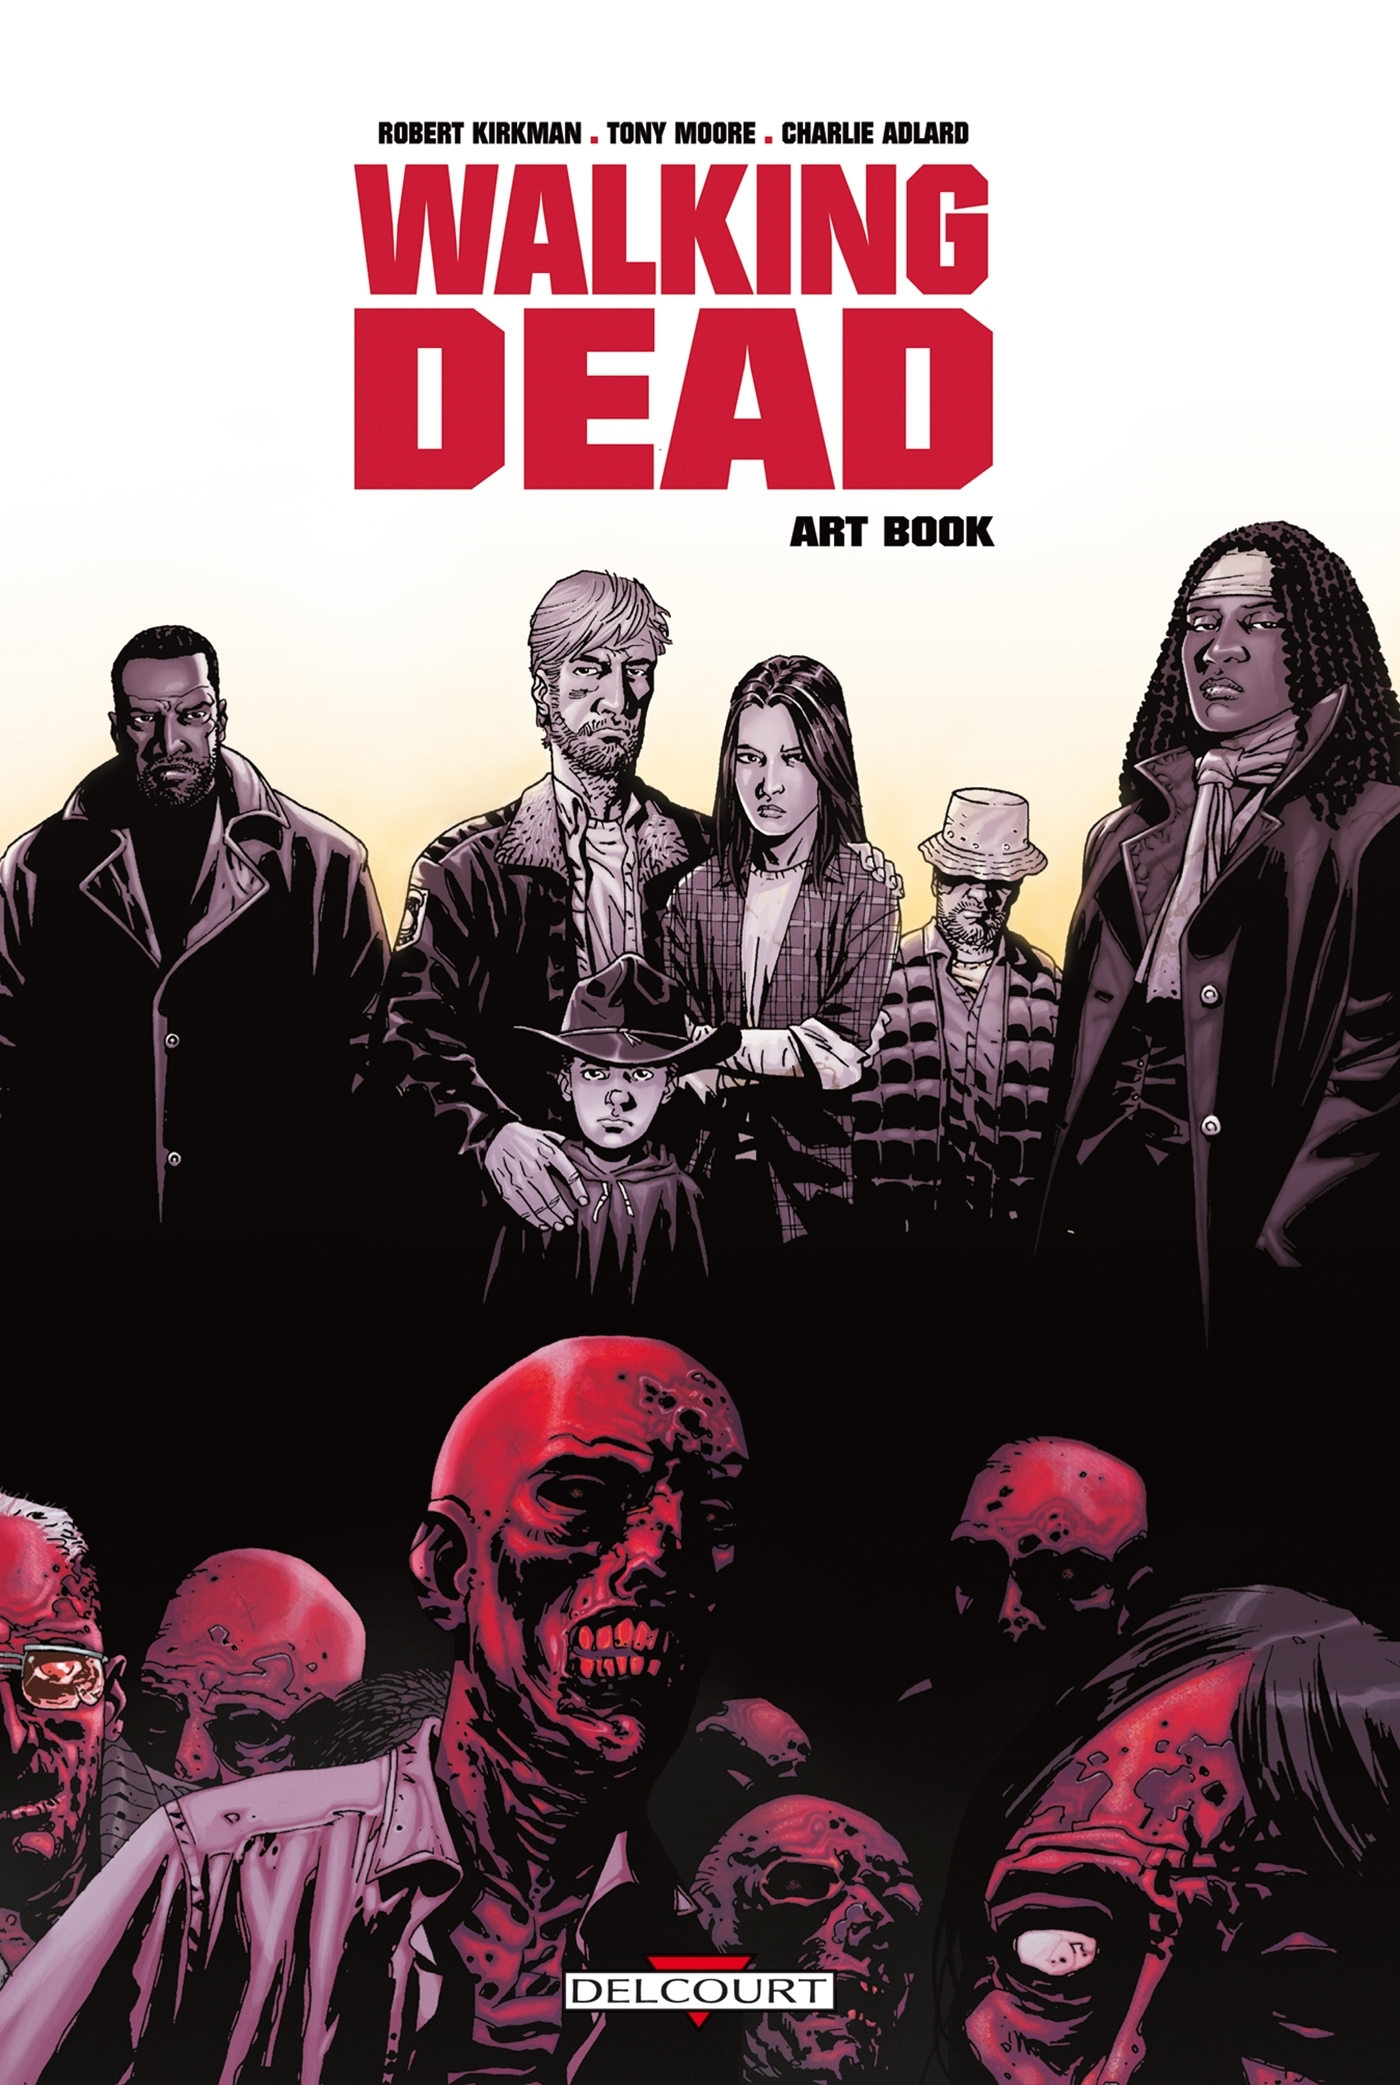 WALKING DEAD ART BOOK